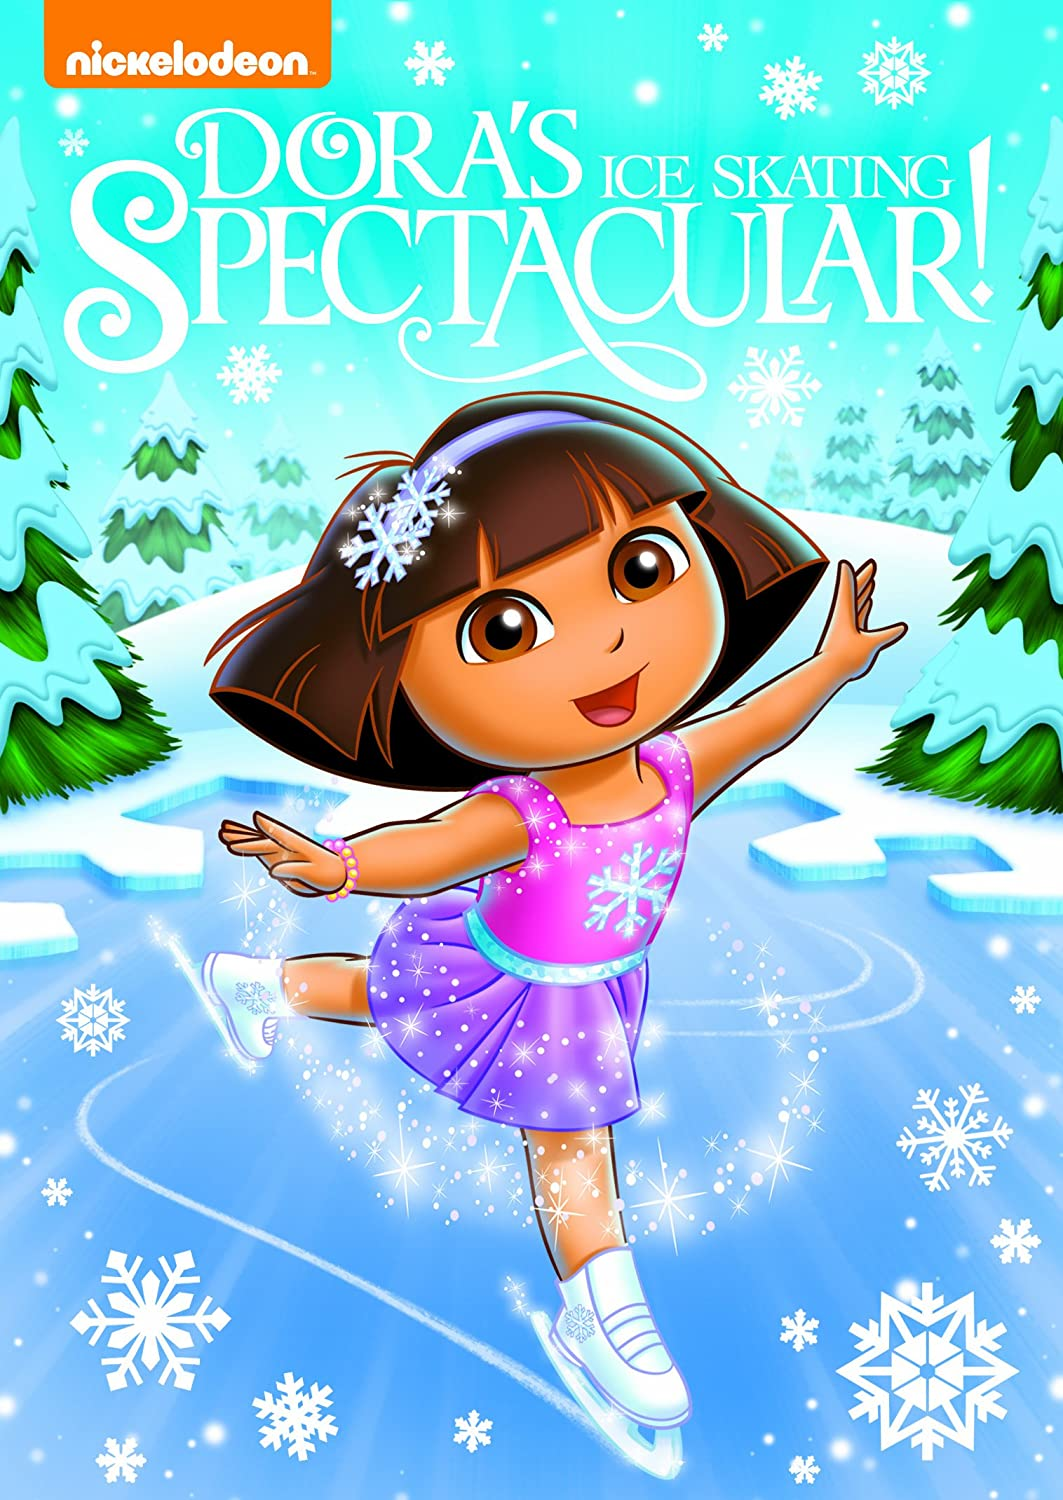 Dora the Explorer: Doras Ice Skating Spectacular